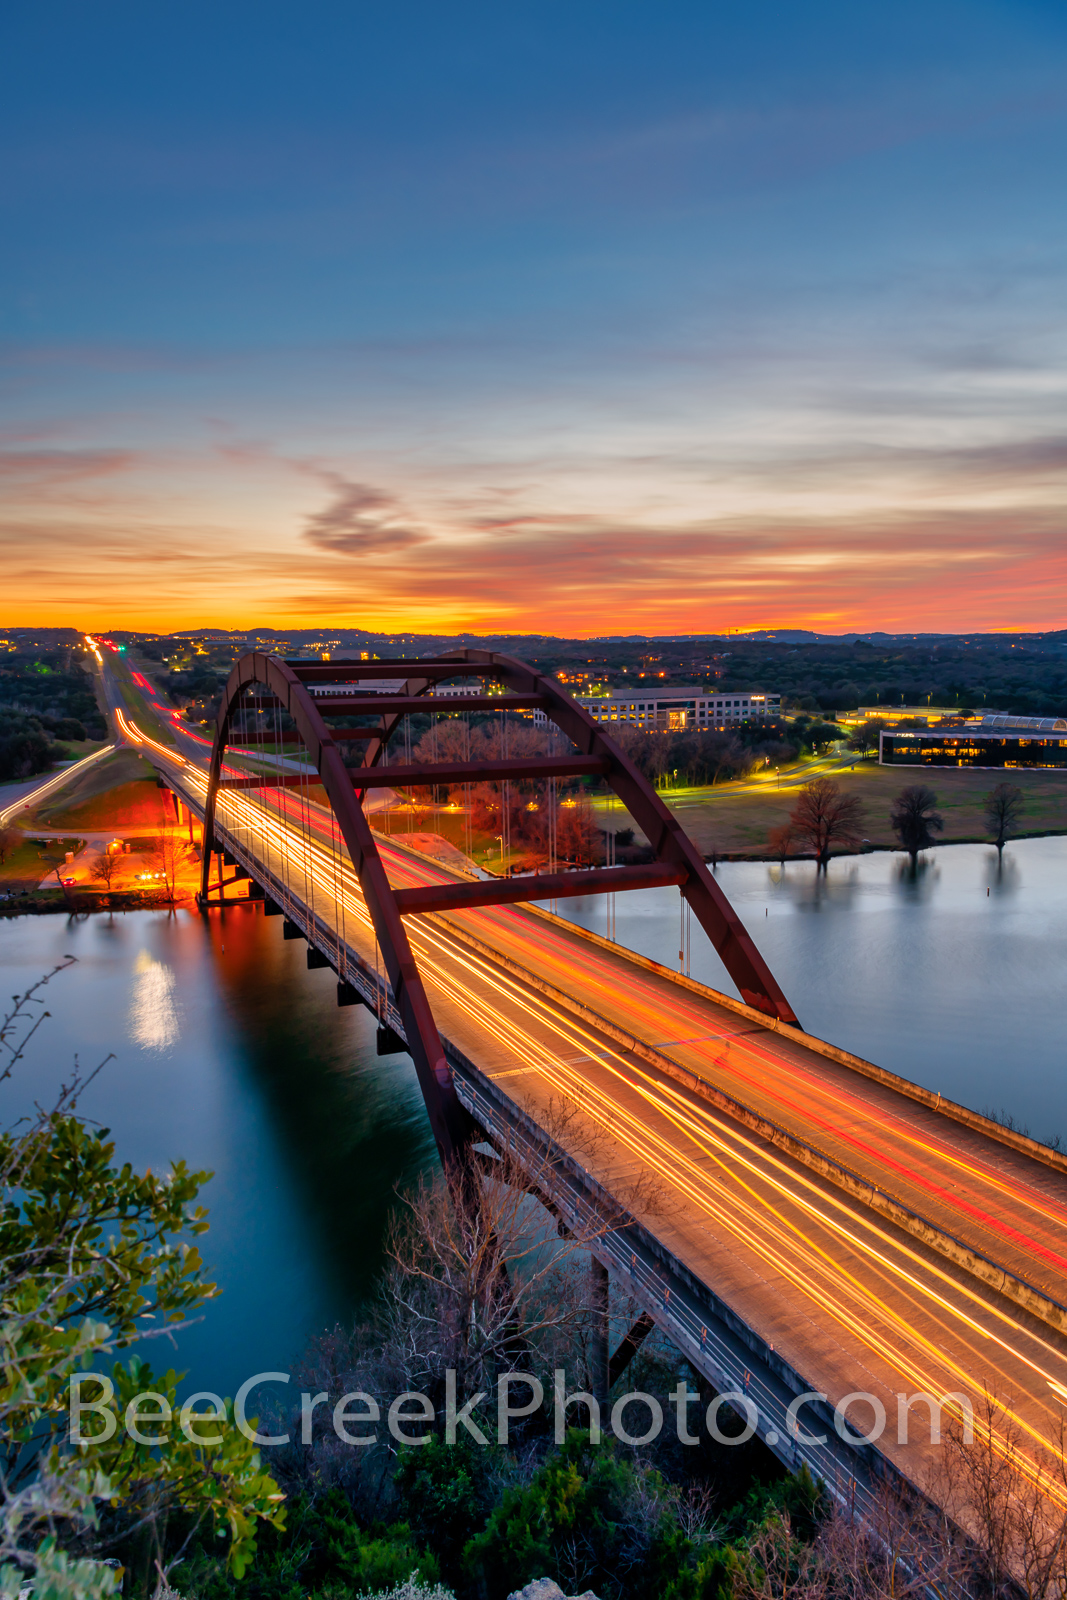 Austin, Pennybacker, bridge, Austin 360 bridge, night, dark, sunset, vertical, Lake Austin, colors, texas hill country,texas scenery, boats, hill country, texas landscape, recreational, boating, swimm, photo